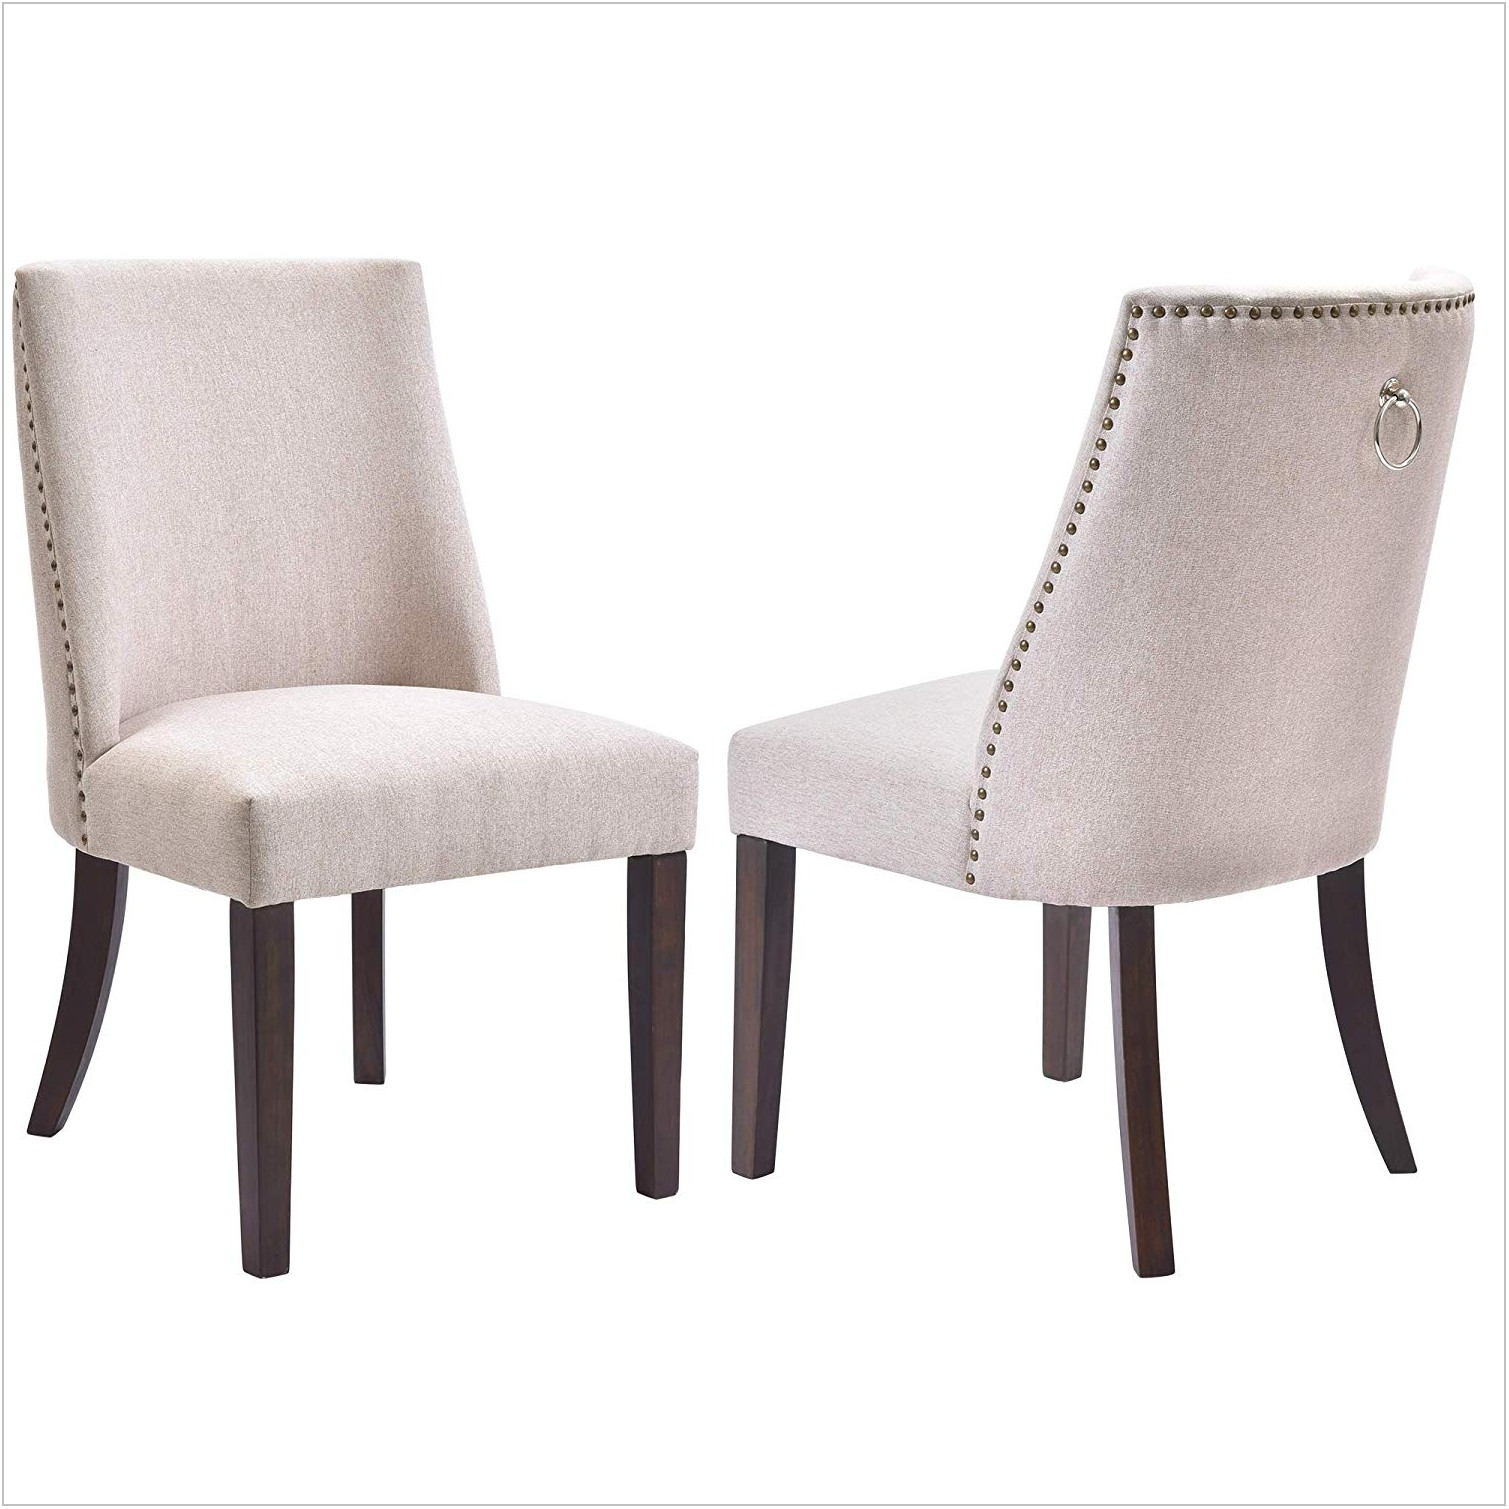 Dining Room Chair Upholstery Foam